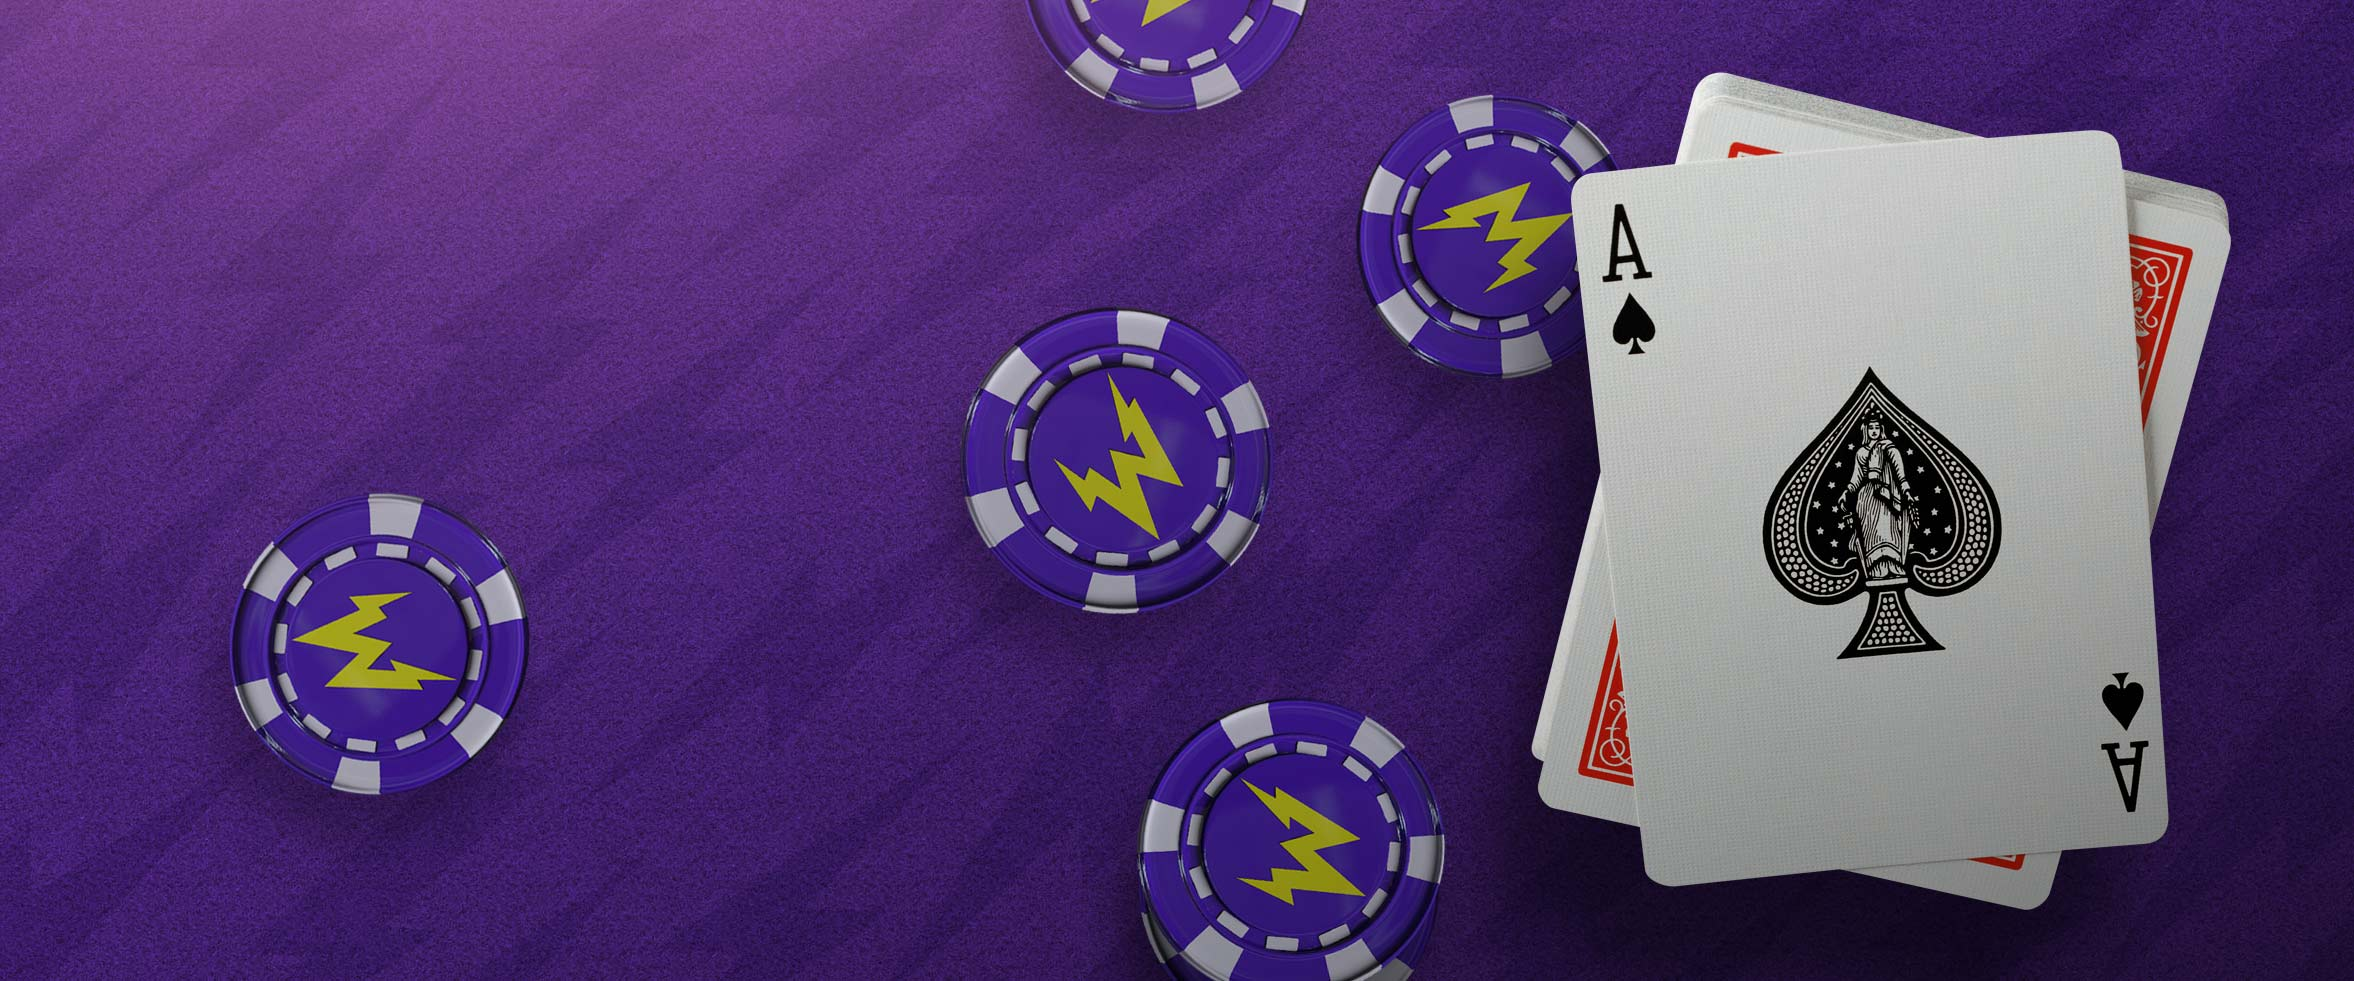 Wildz-themed Blackjack Table Lands at Live Casino